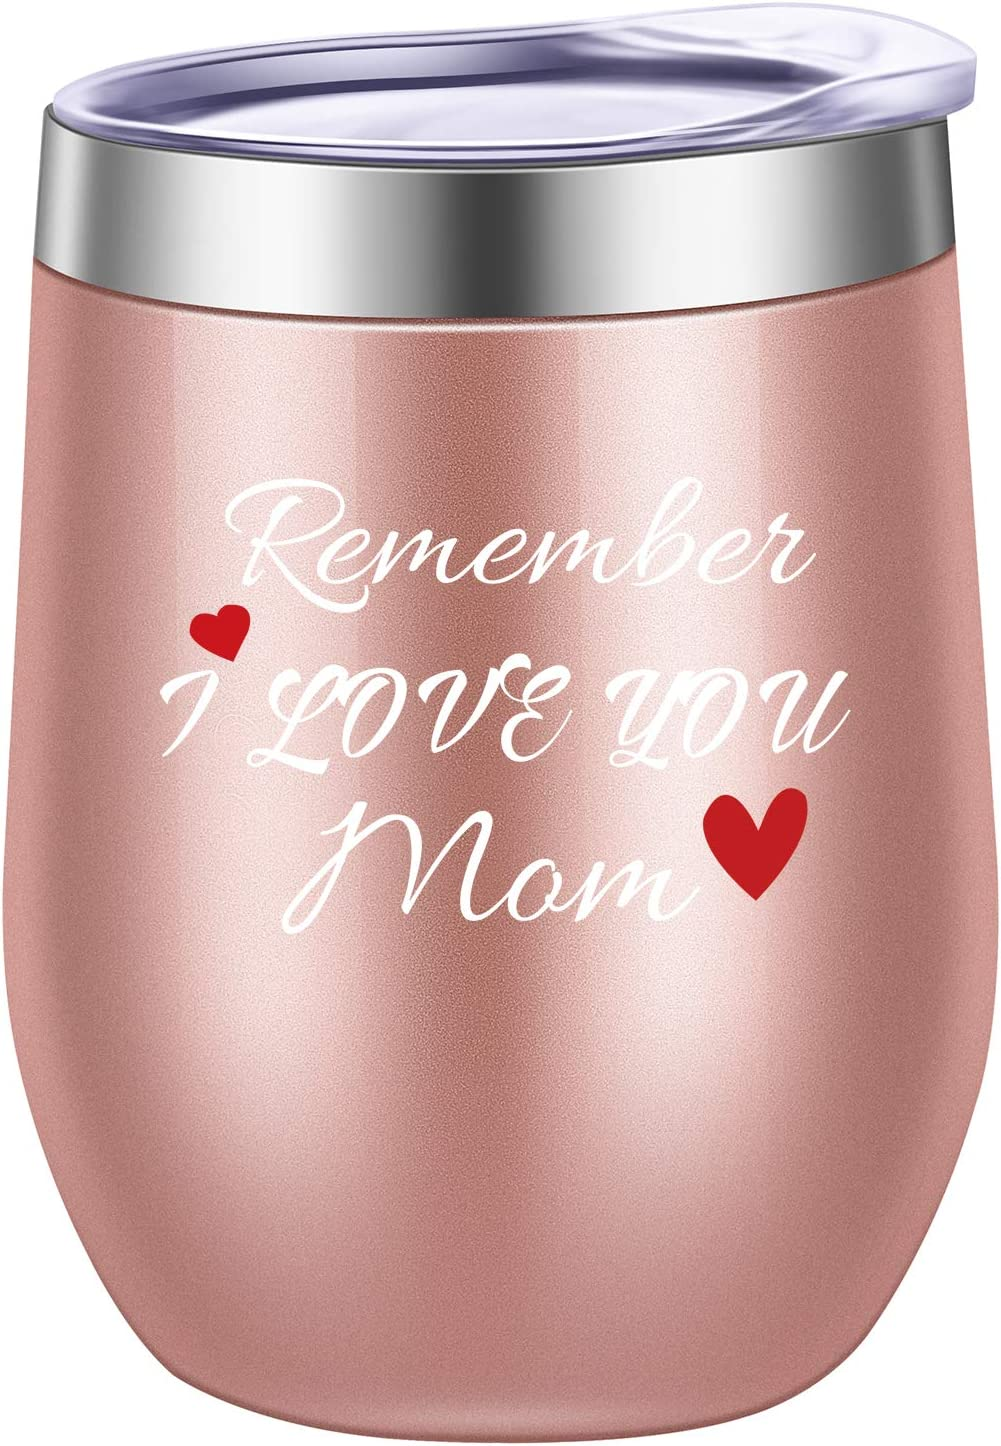 Pufuny Remember I Love You Mom Wine Glasses Tumbler,Mother's Day Gifts,Perfect Christmas Gifts for Mom,Mother Gifts from Daughter,Son 12 oz Rose Gold